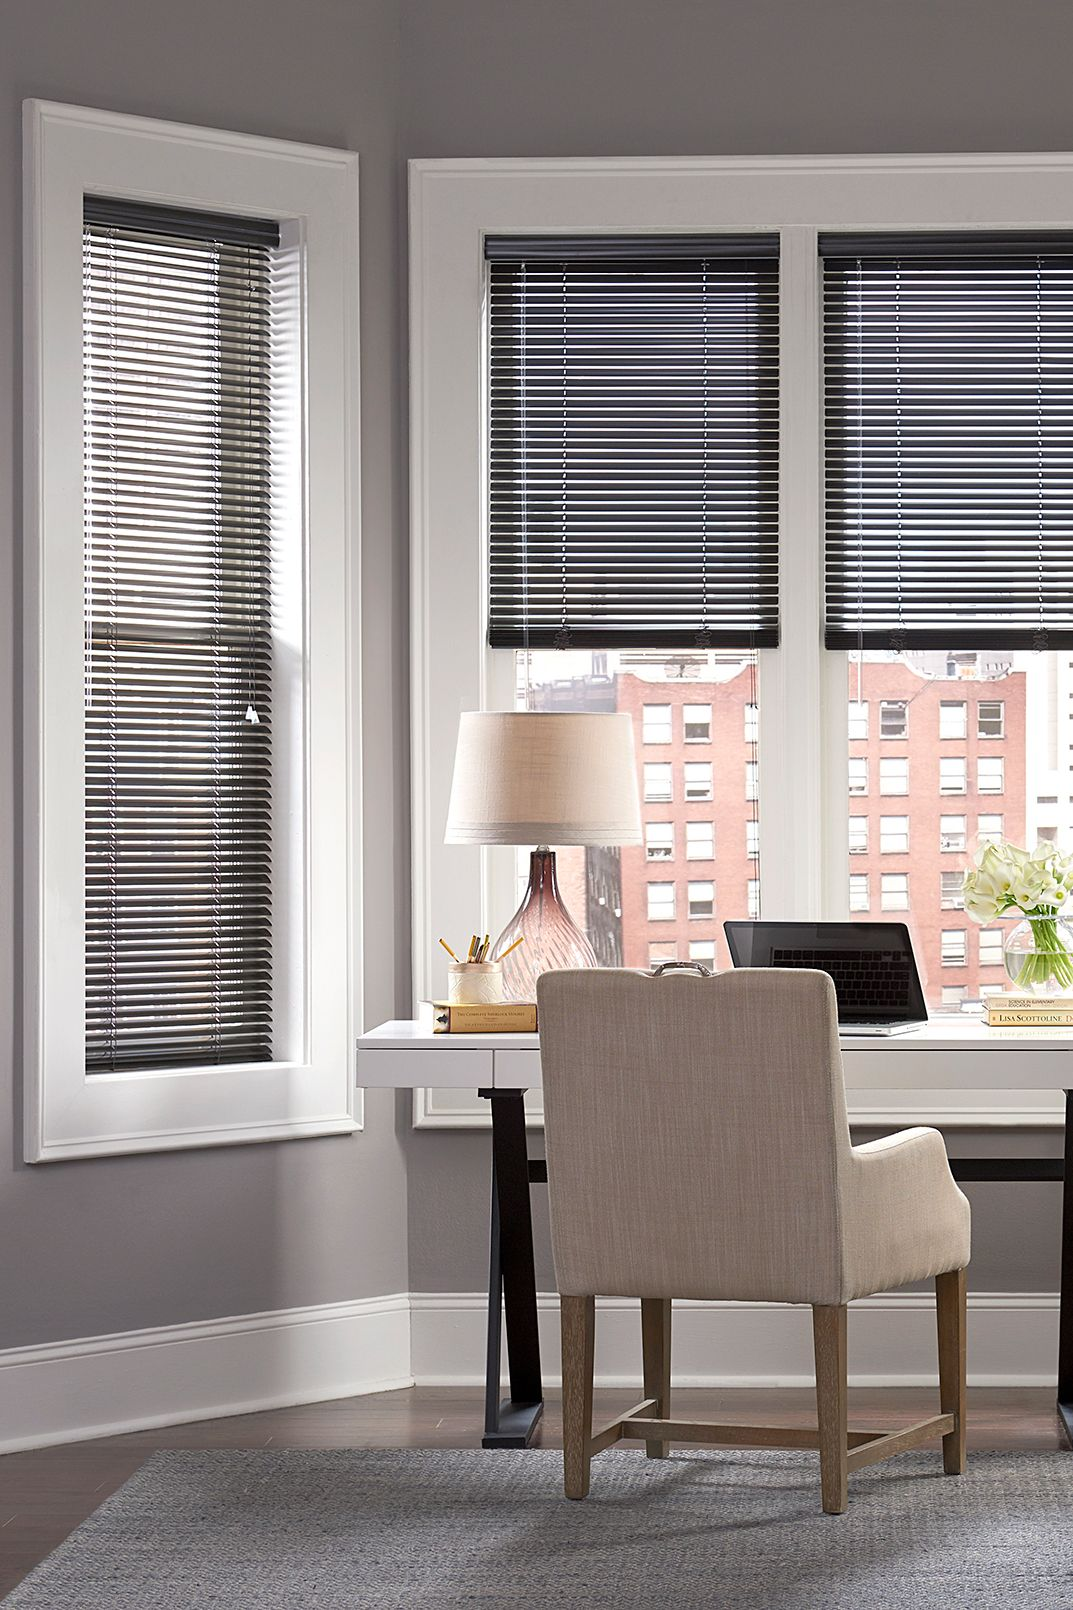 The Ultimate Guide To Blinds For Bay Windows Blinds Com Living Room Blinds Living Room Windows Blinds For Windows